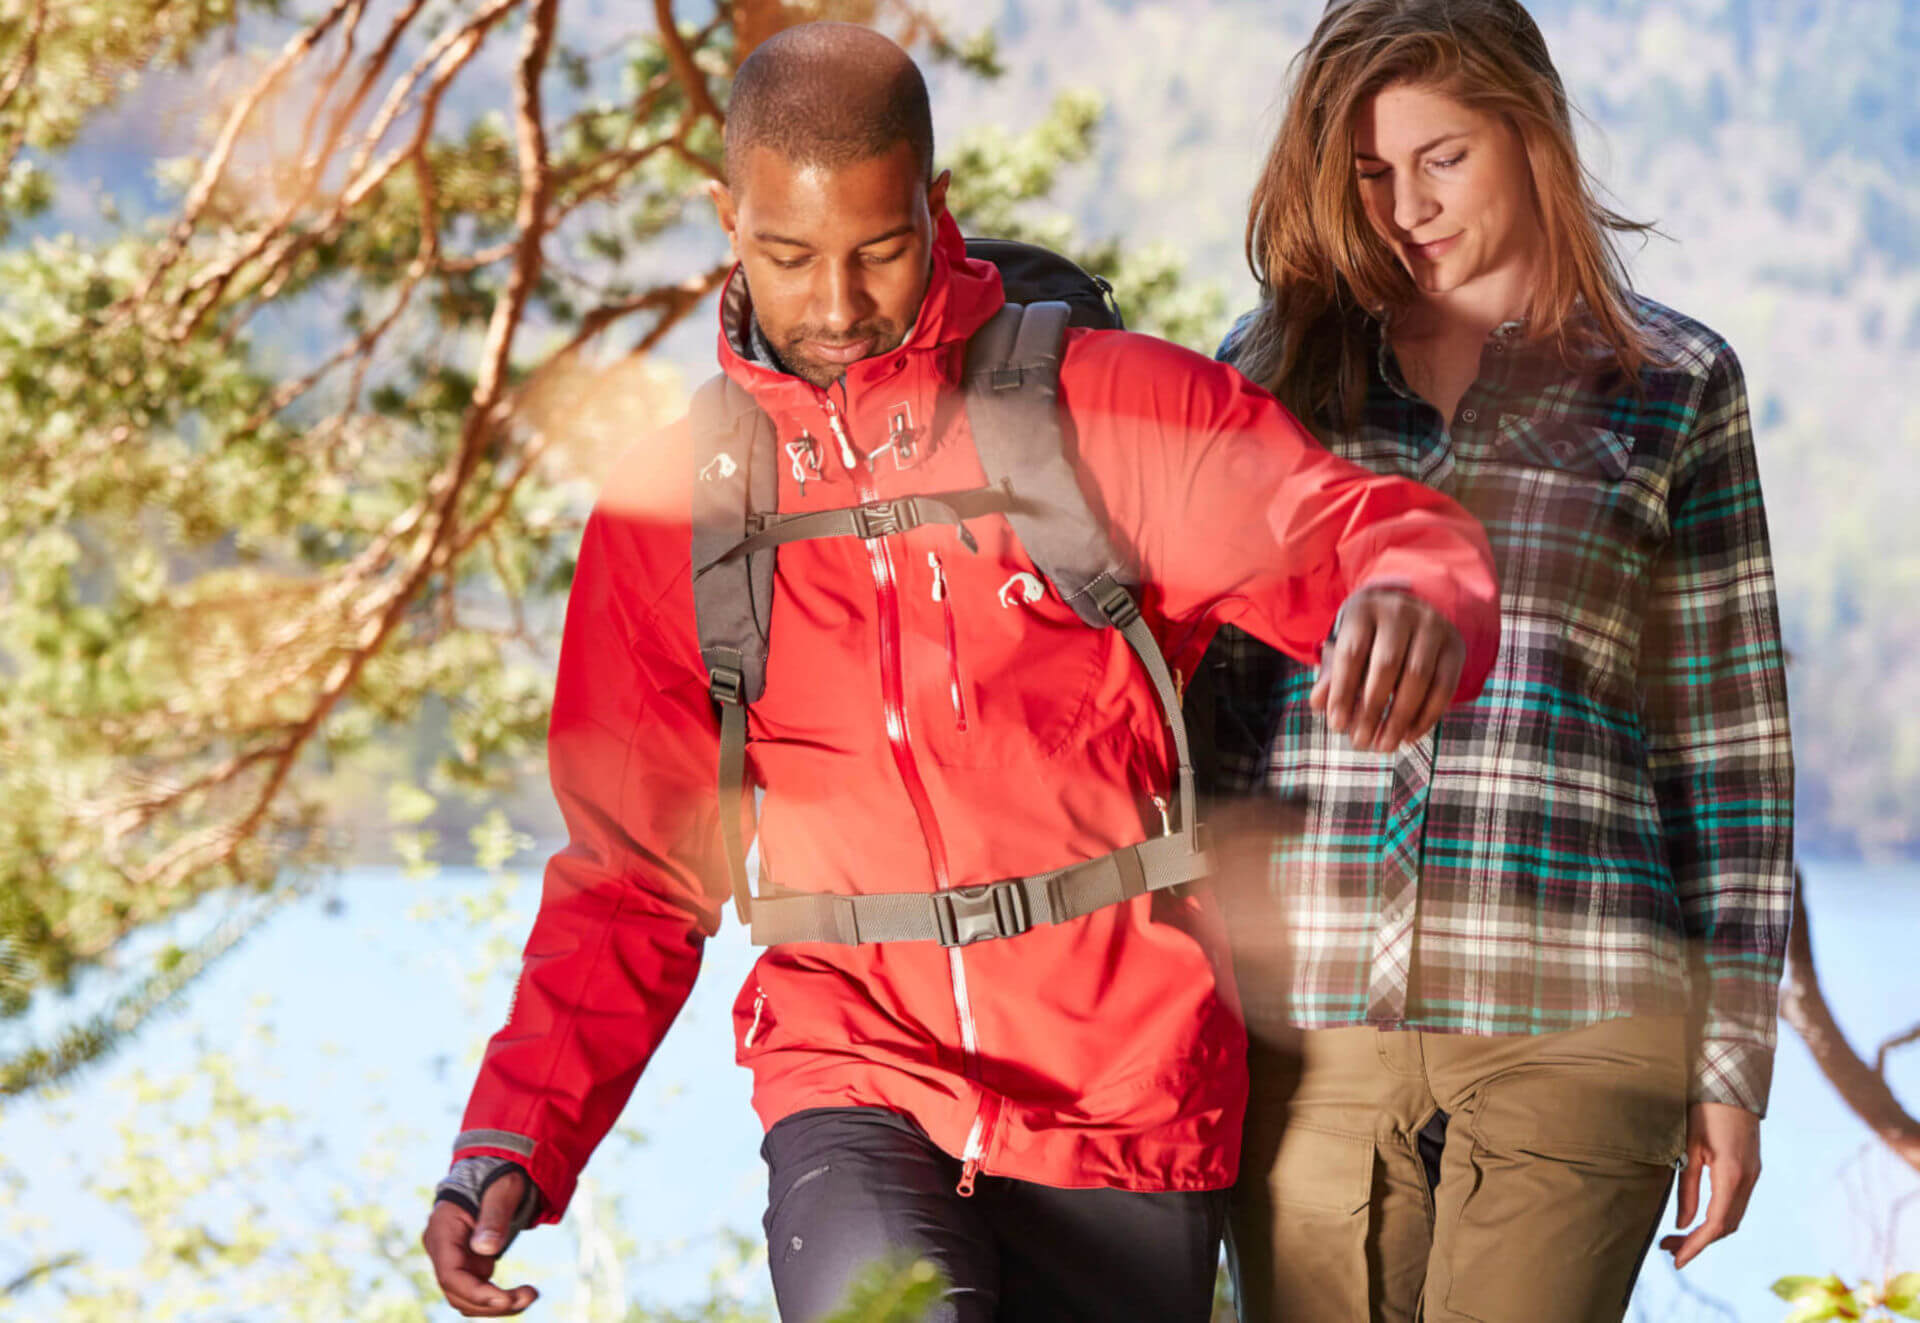 Outoor wear basics - Find the right outdoor clothing.